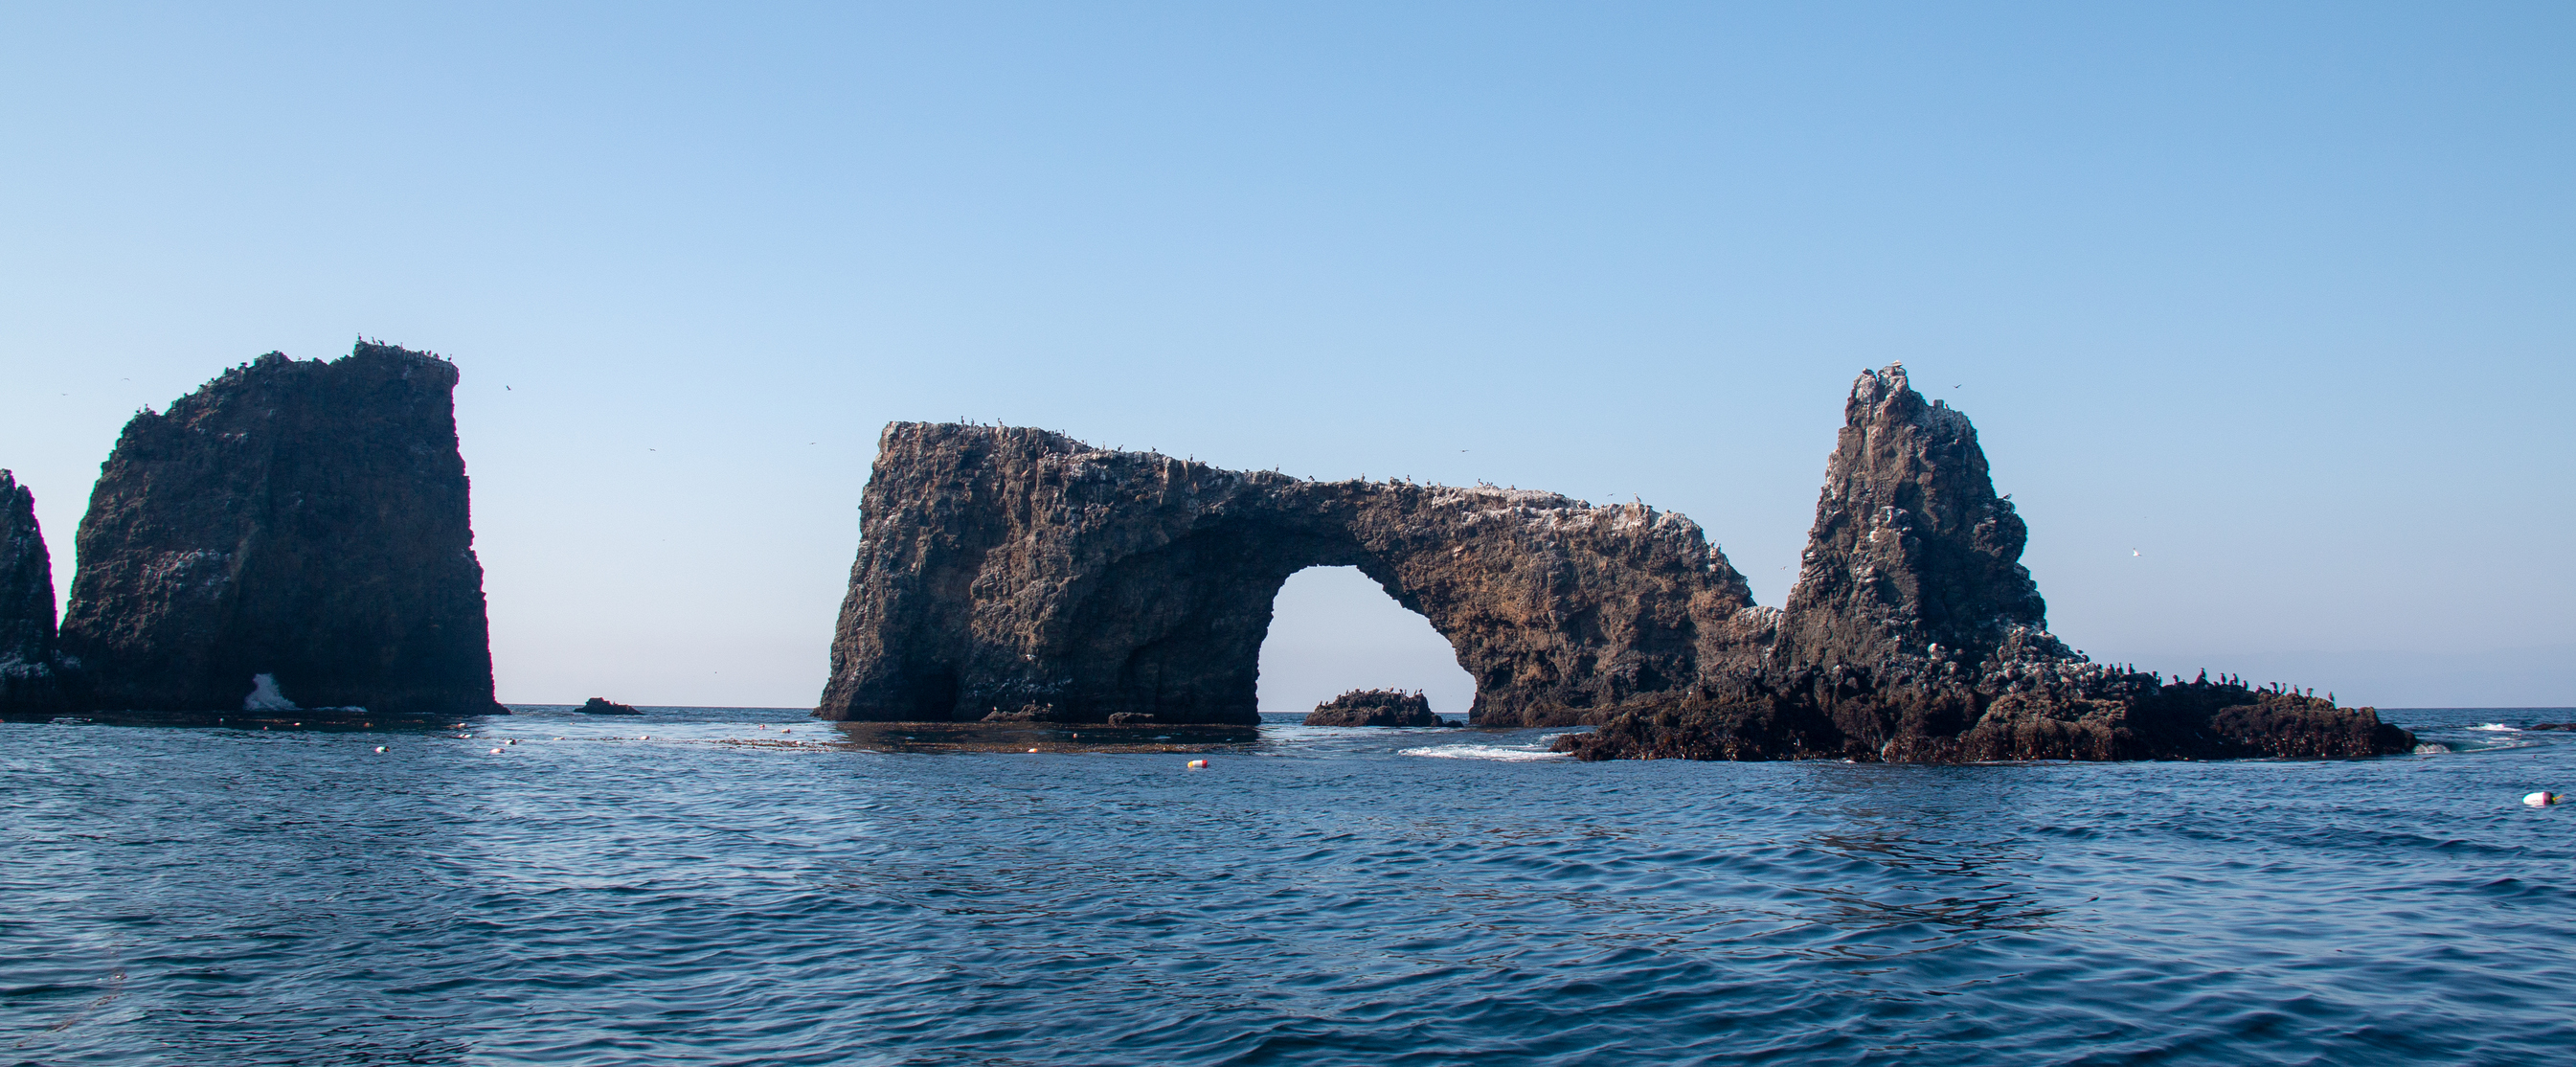 A rock arch and spire rise out of the ocean's surface.